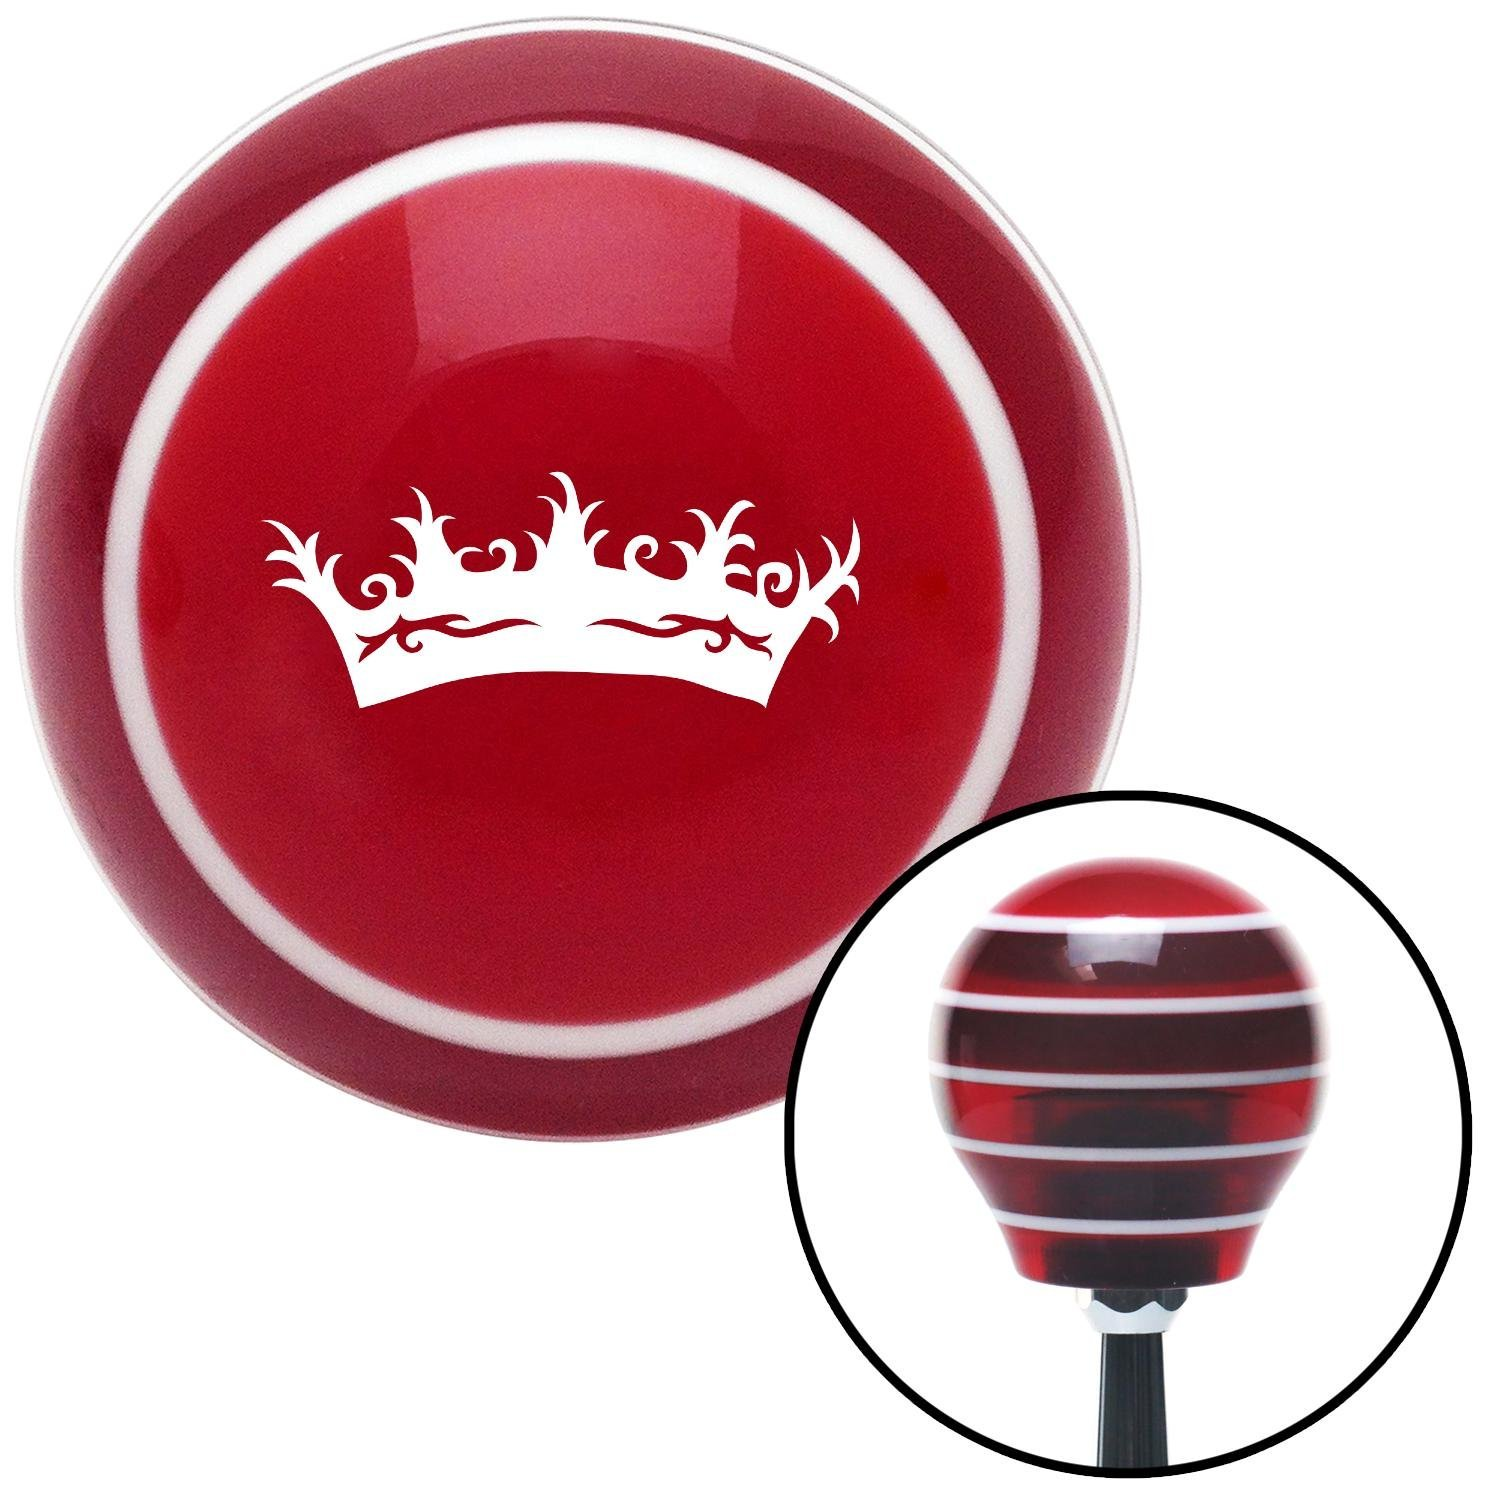 American Shifter 113158 Red Stripe Shift Knob with M16 x 1.5 Insert White Prince Crown